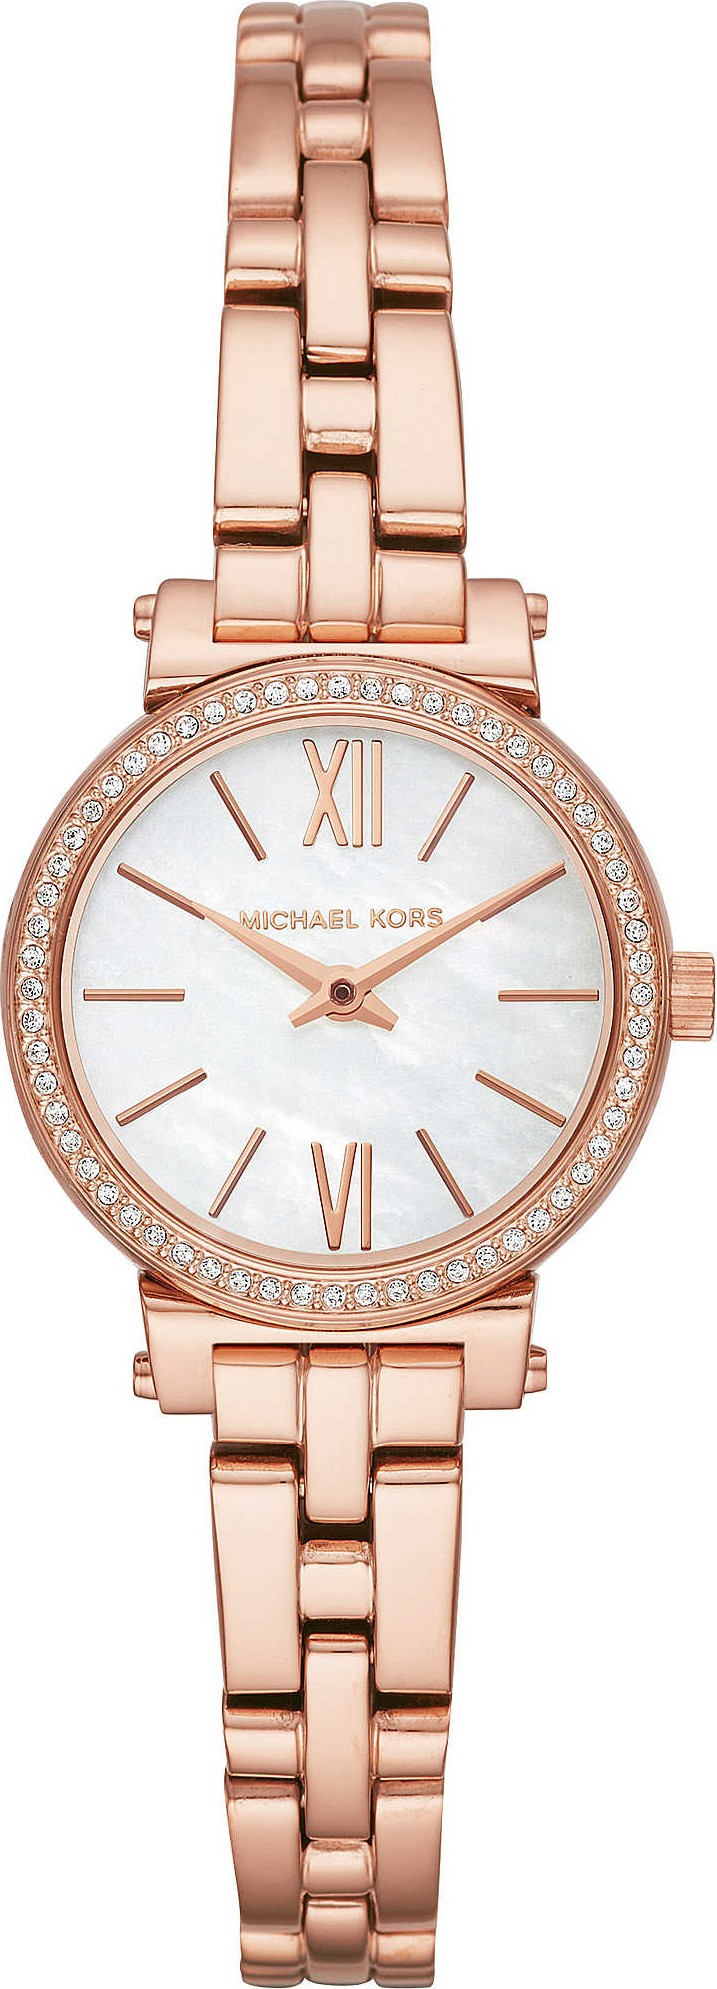 Michael Kors Sofie Rose Gold-Tone Watch 26mm